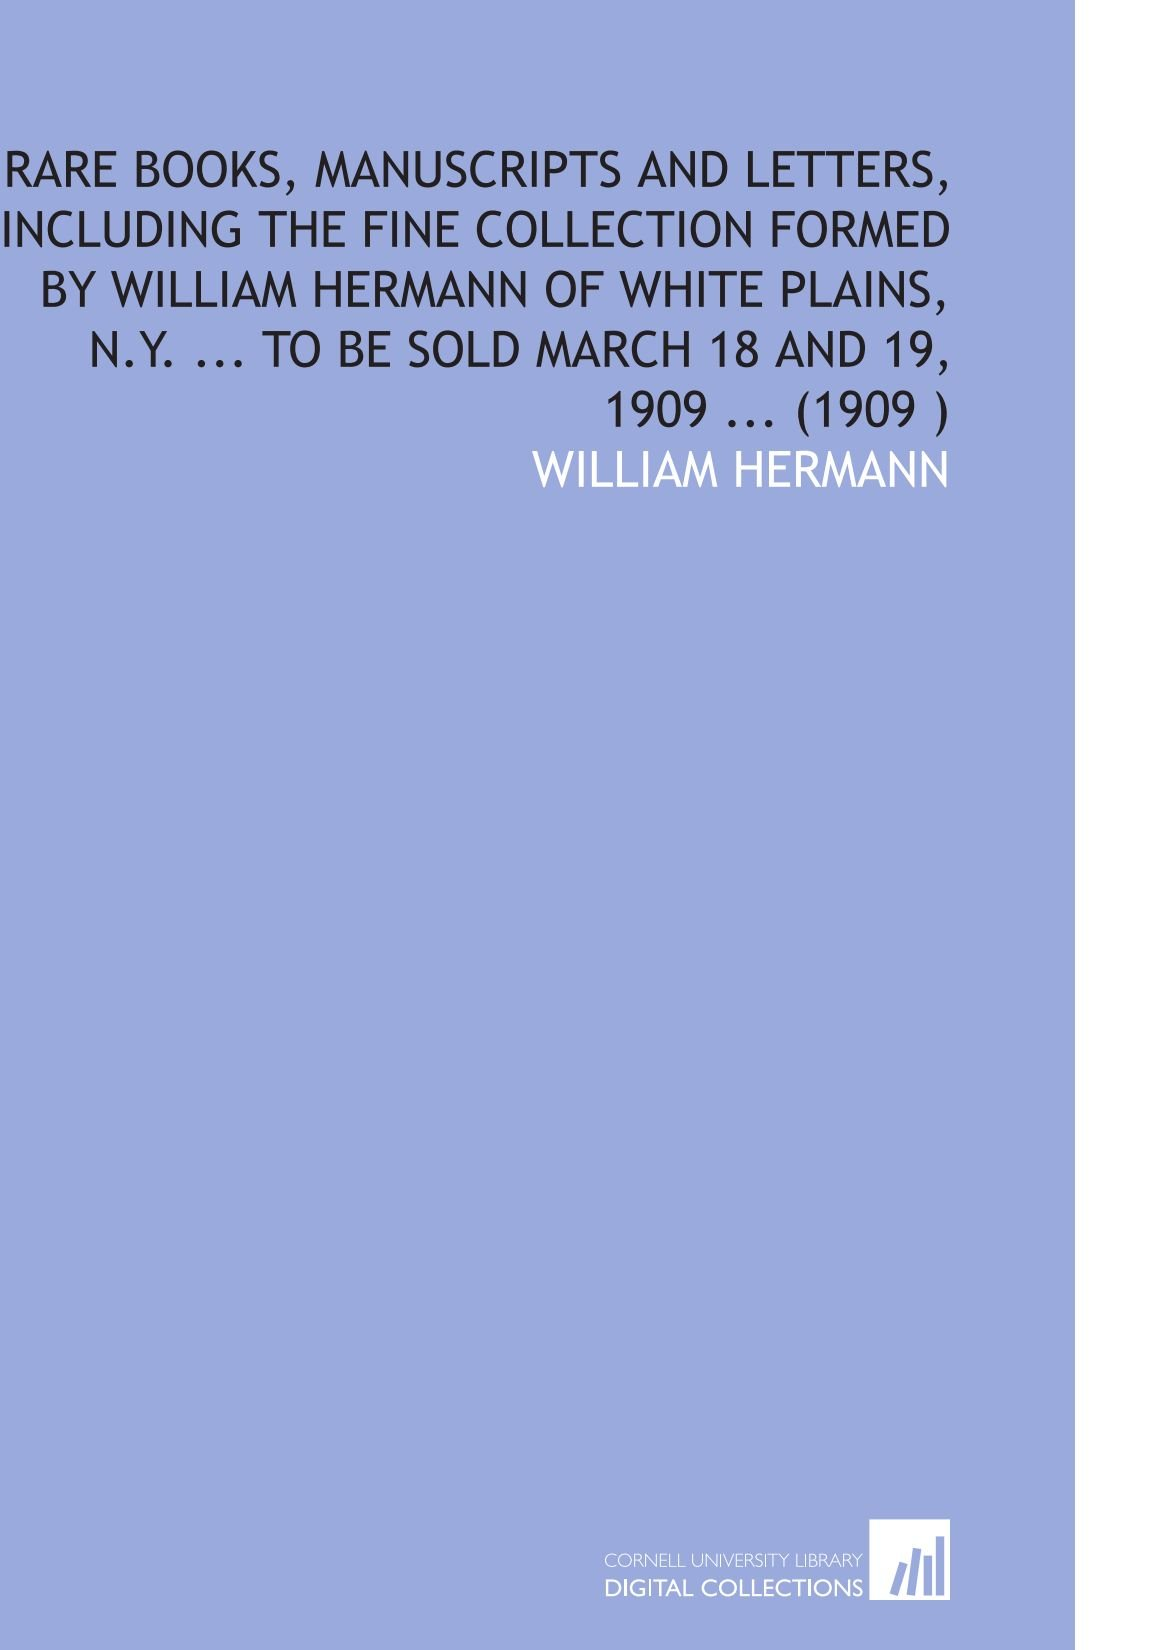 Download Rare Books, Manuscripts and Letters, Including the Fine Collection Formed by William Hermann of White Plains, N.Y. ... To Be Sold March 18 and 19, 1909 ... (1909 ) pdf epub